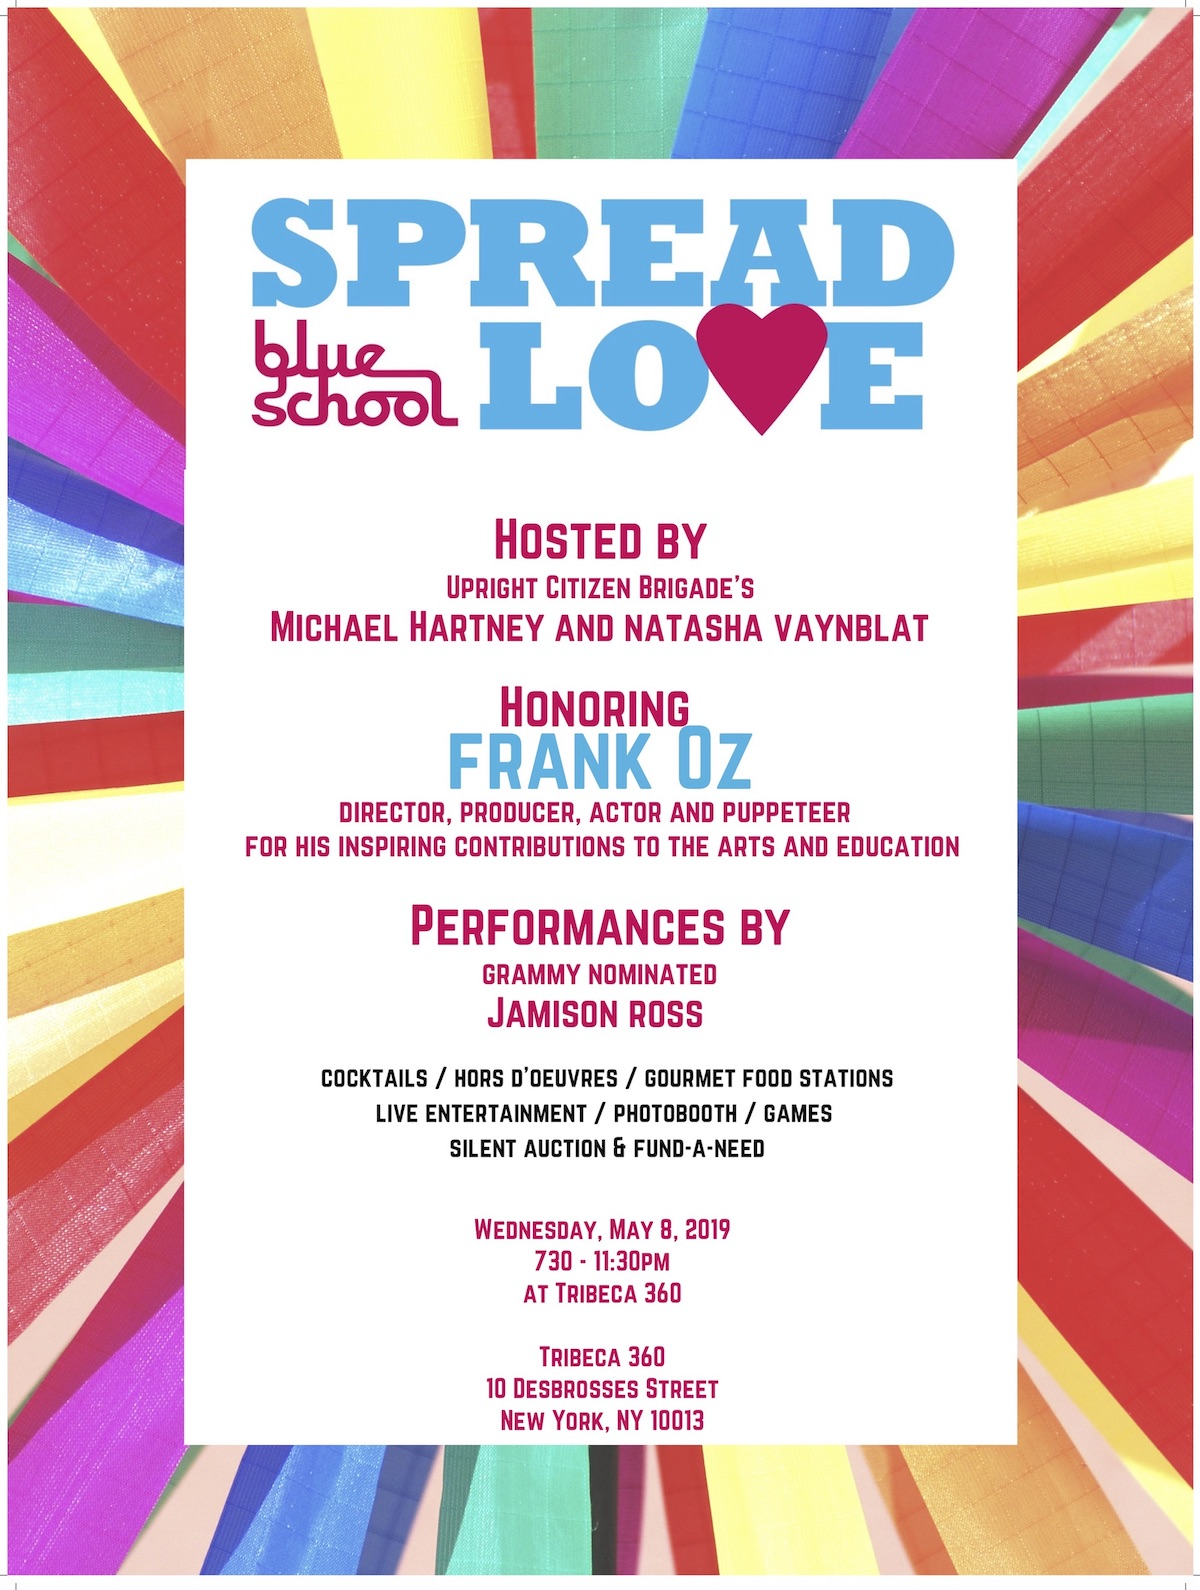 Spread Love 2019 invite.jpg